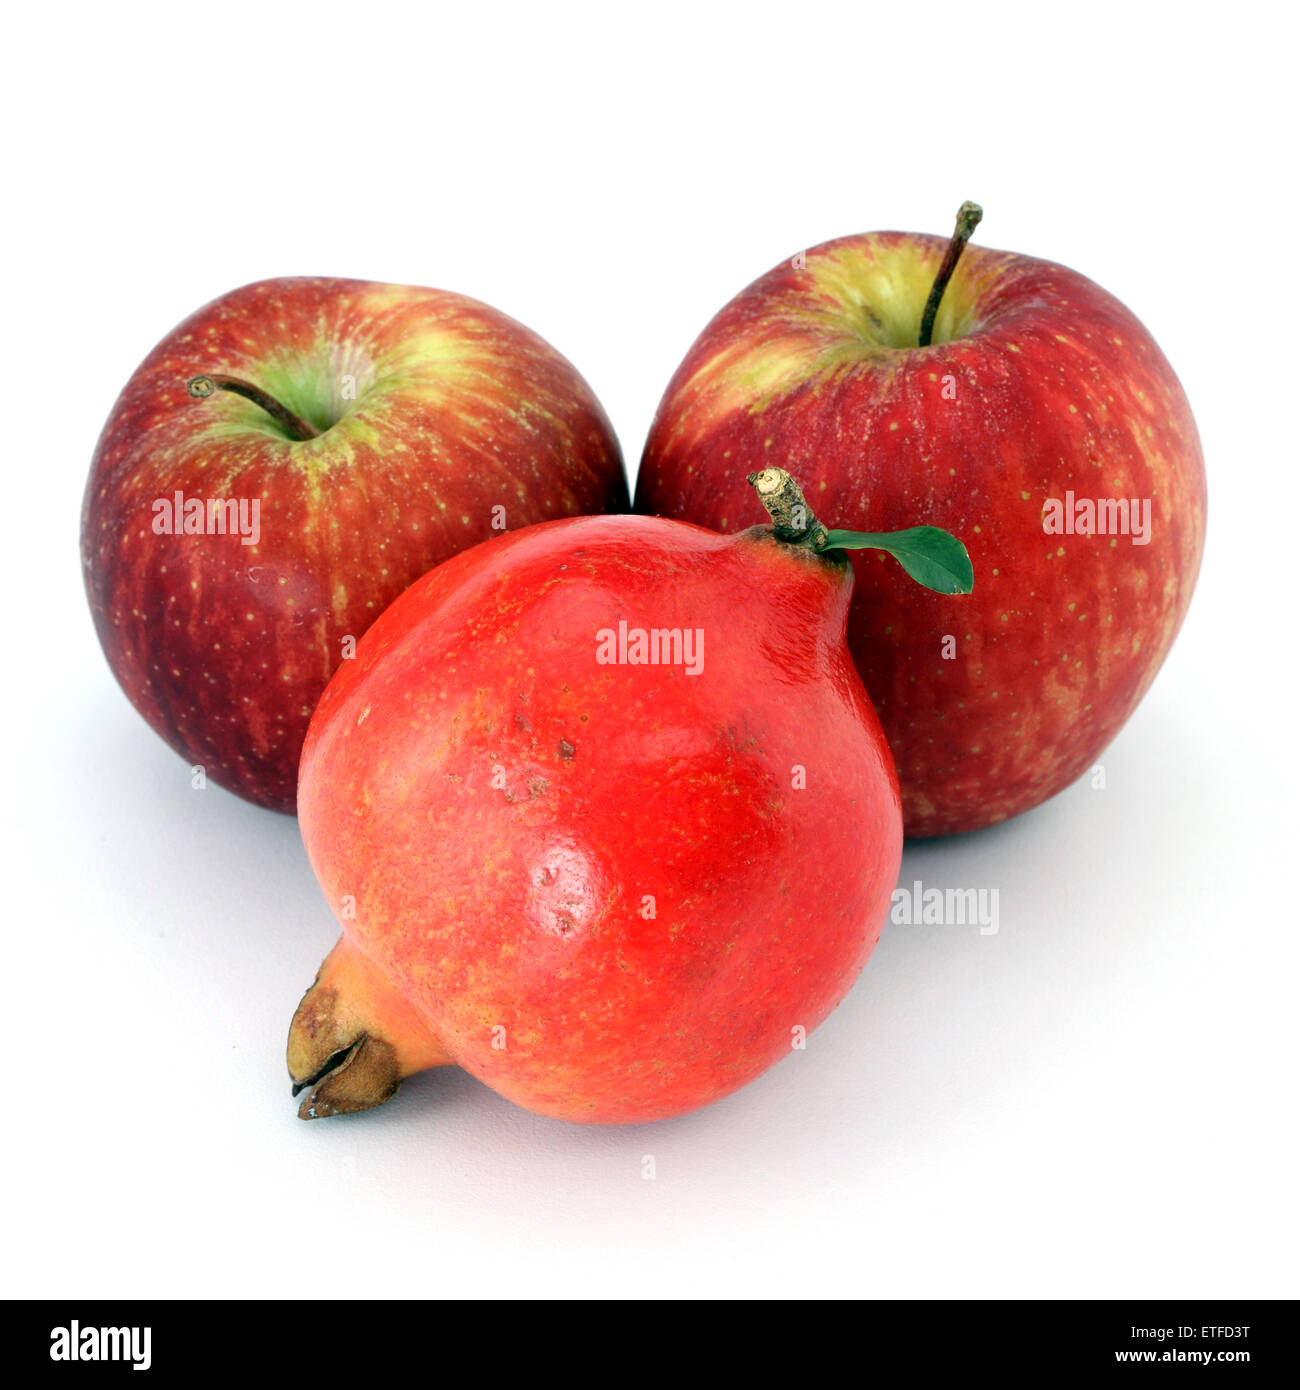 Red apples and pomegranate on white background - Stock Image